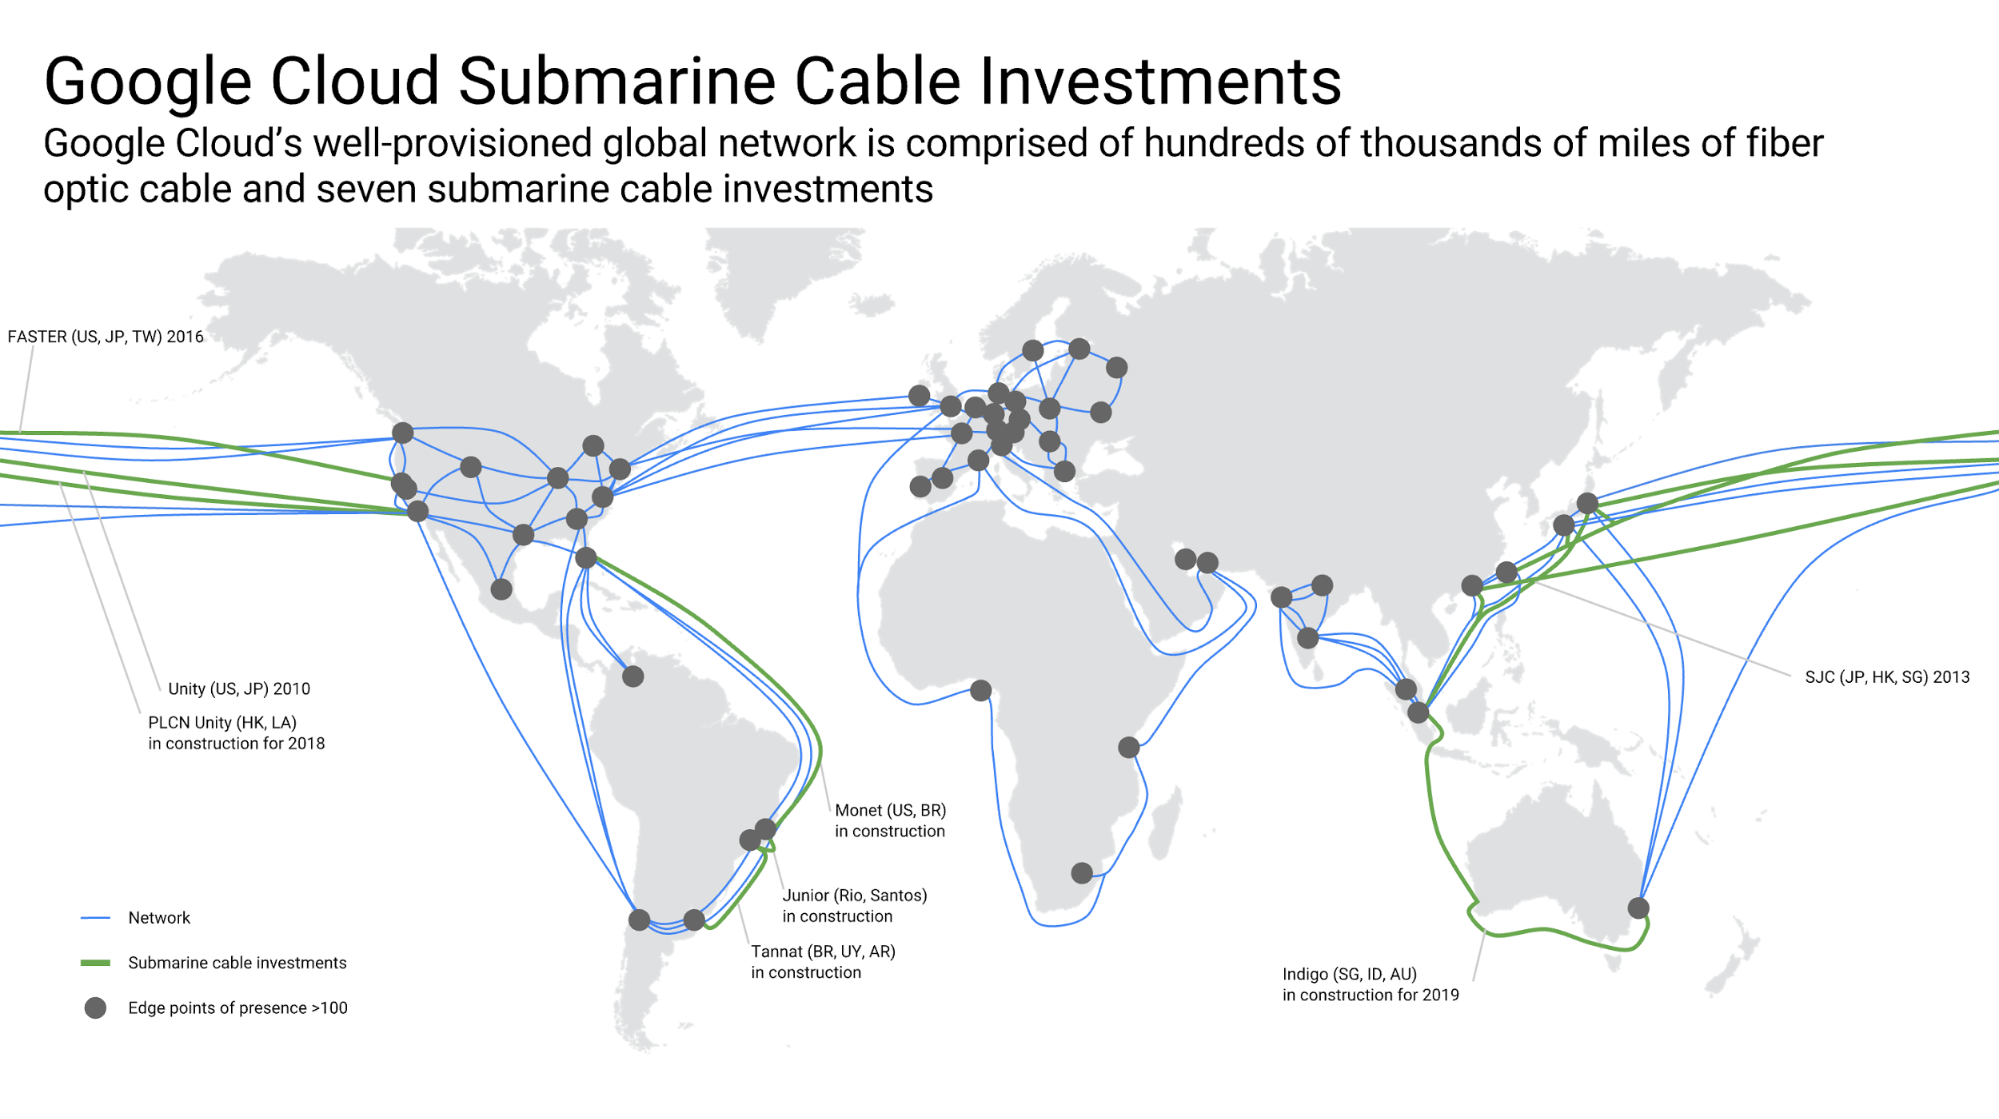 Uncategorized www google com br google chrome android - It S The Latest In Our Ongoing Effort To Improve Google S Connectivity To Asia We Ve Made Seven Submarine Cable Investments In Total This Is Our Fifth In